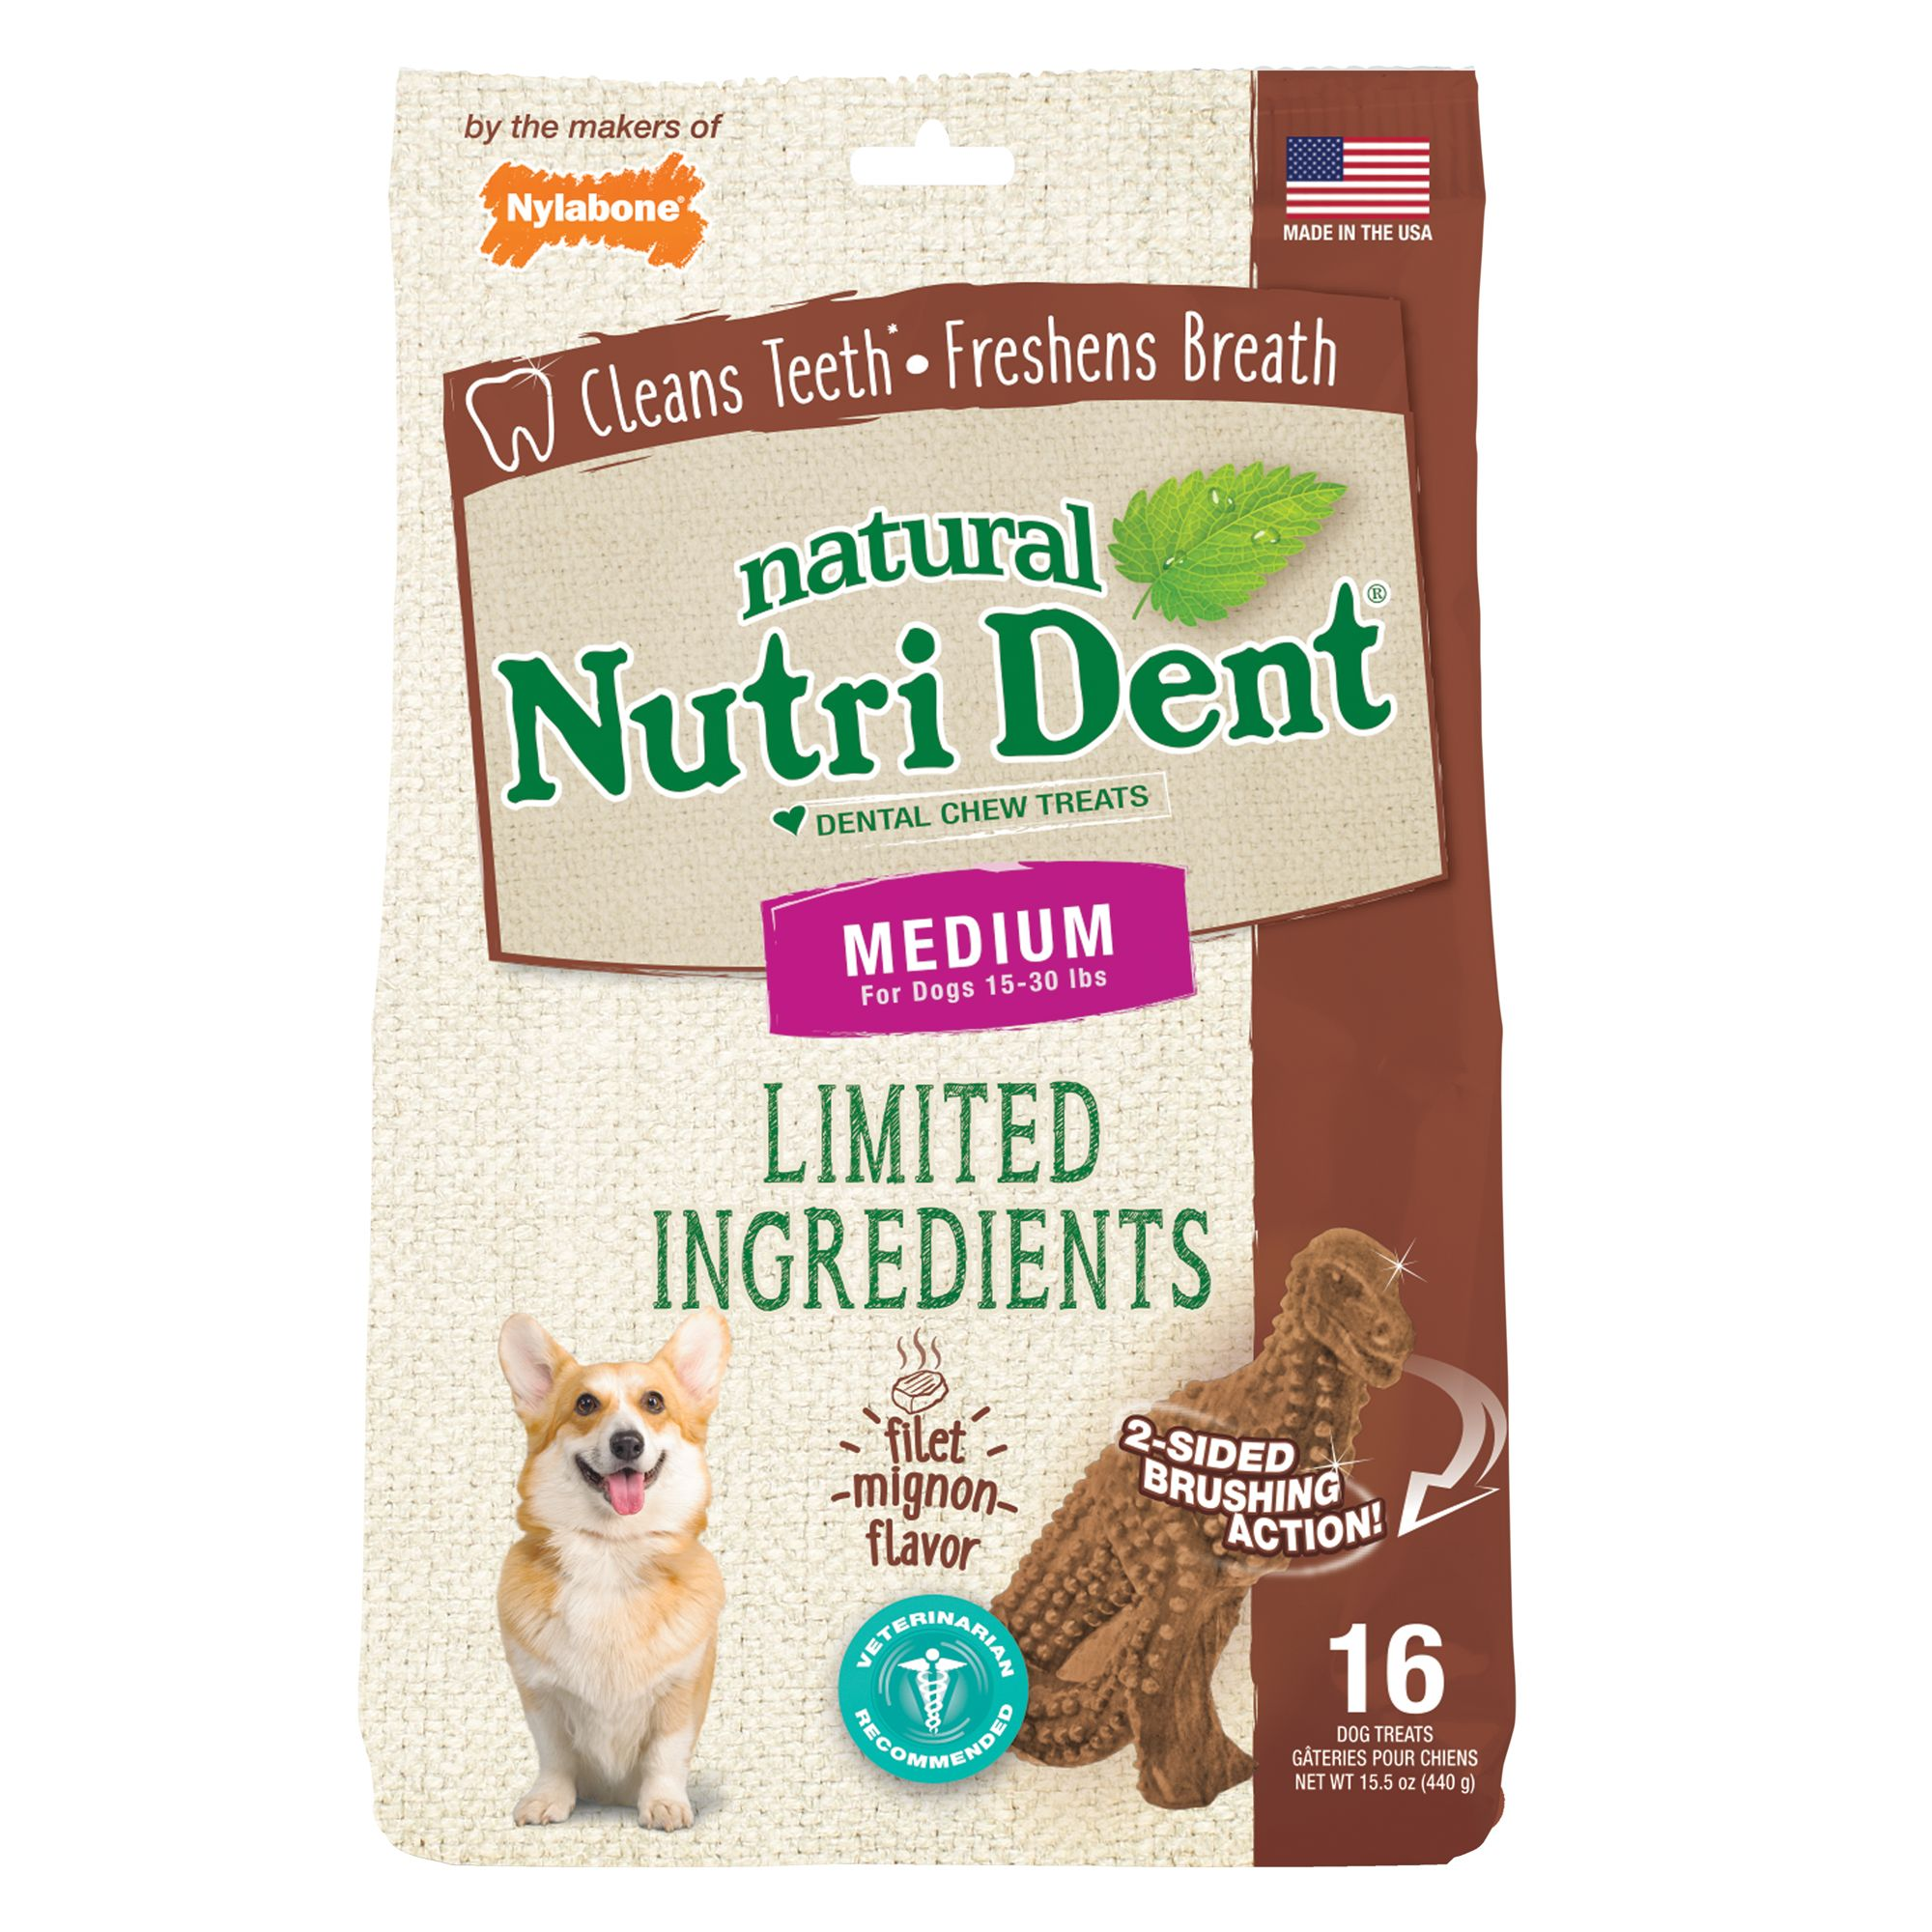 Nylabone® Nutri Dent Limited Ingredients TRex Medium Dog